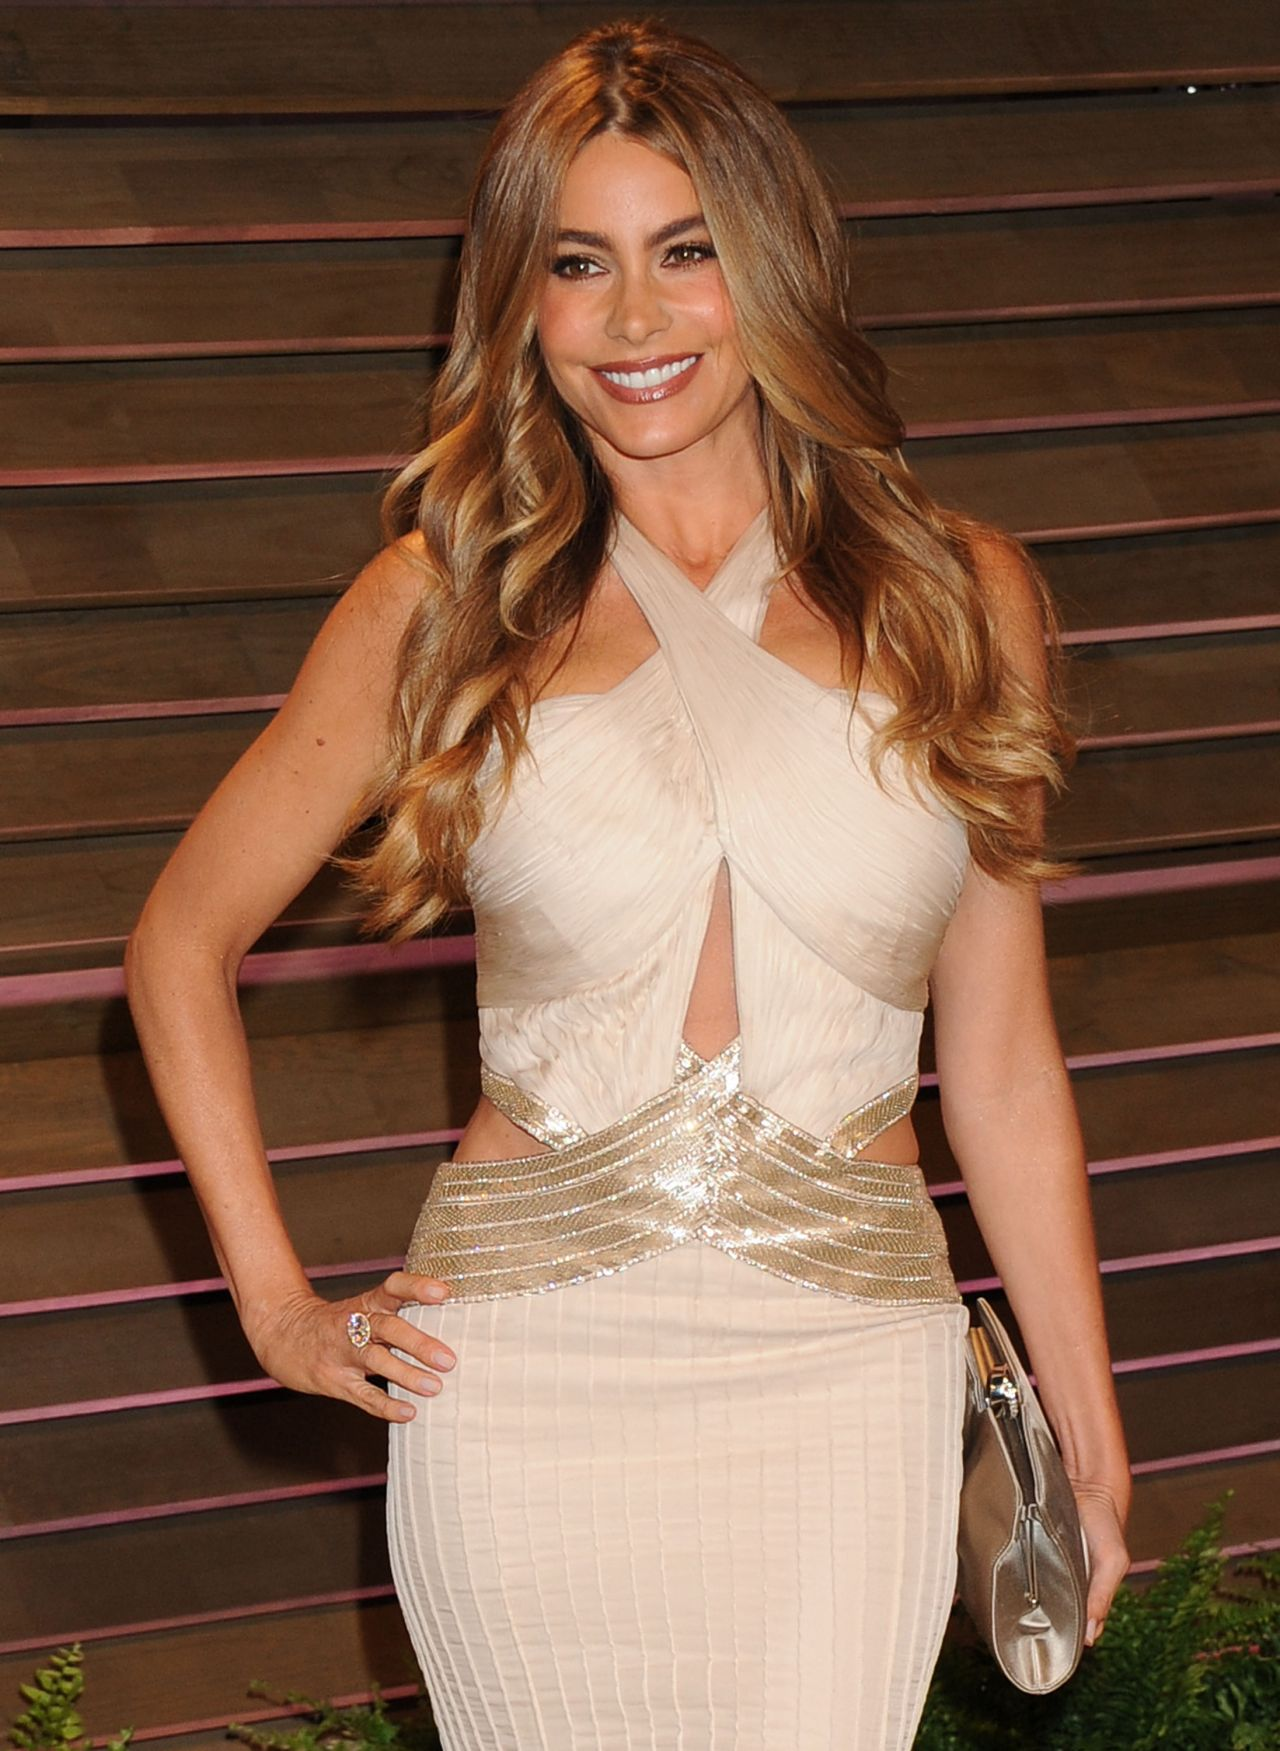 Sofia Vergara Wearing Roberto Cavalli Gown - 2014 Vanity Fair Oscar Party